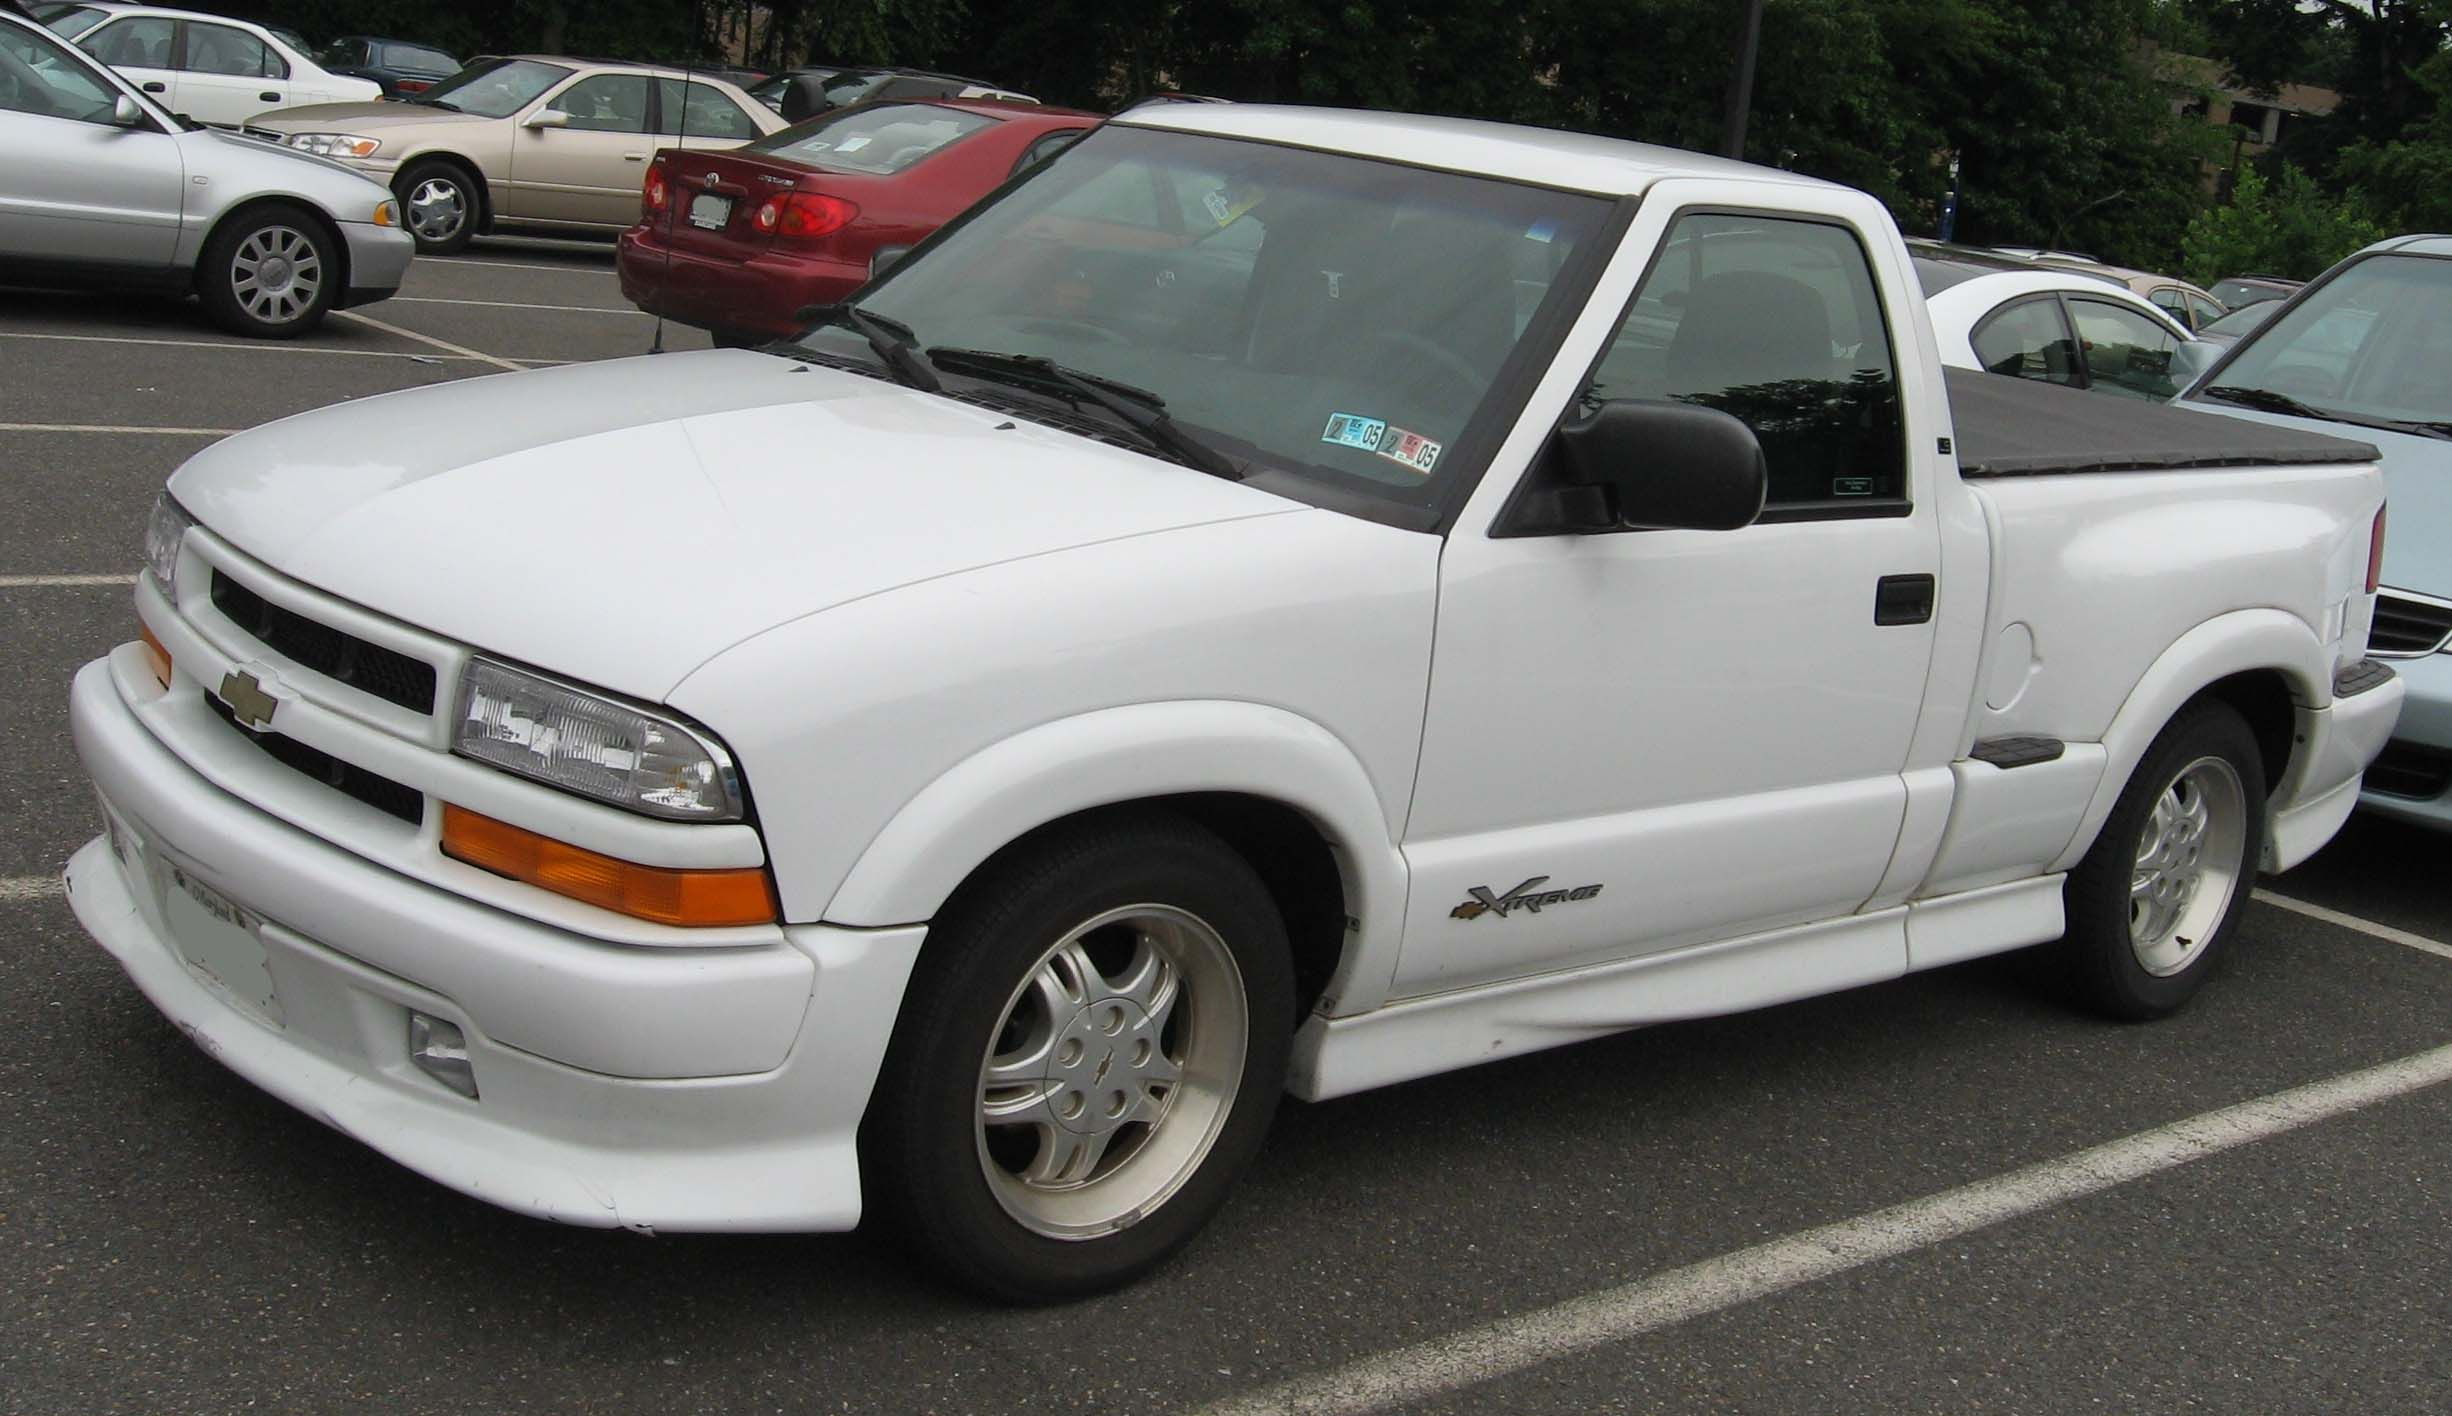 This was what my old princess truck looked like! That step